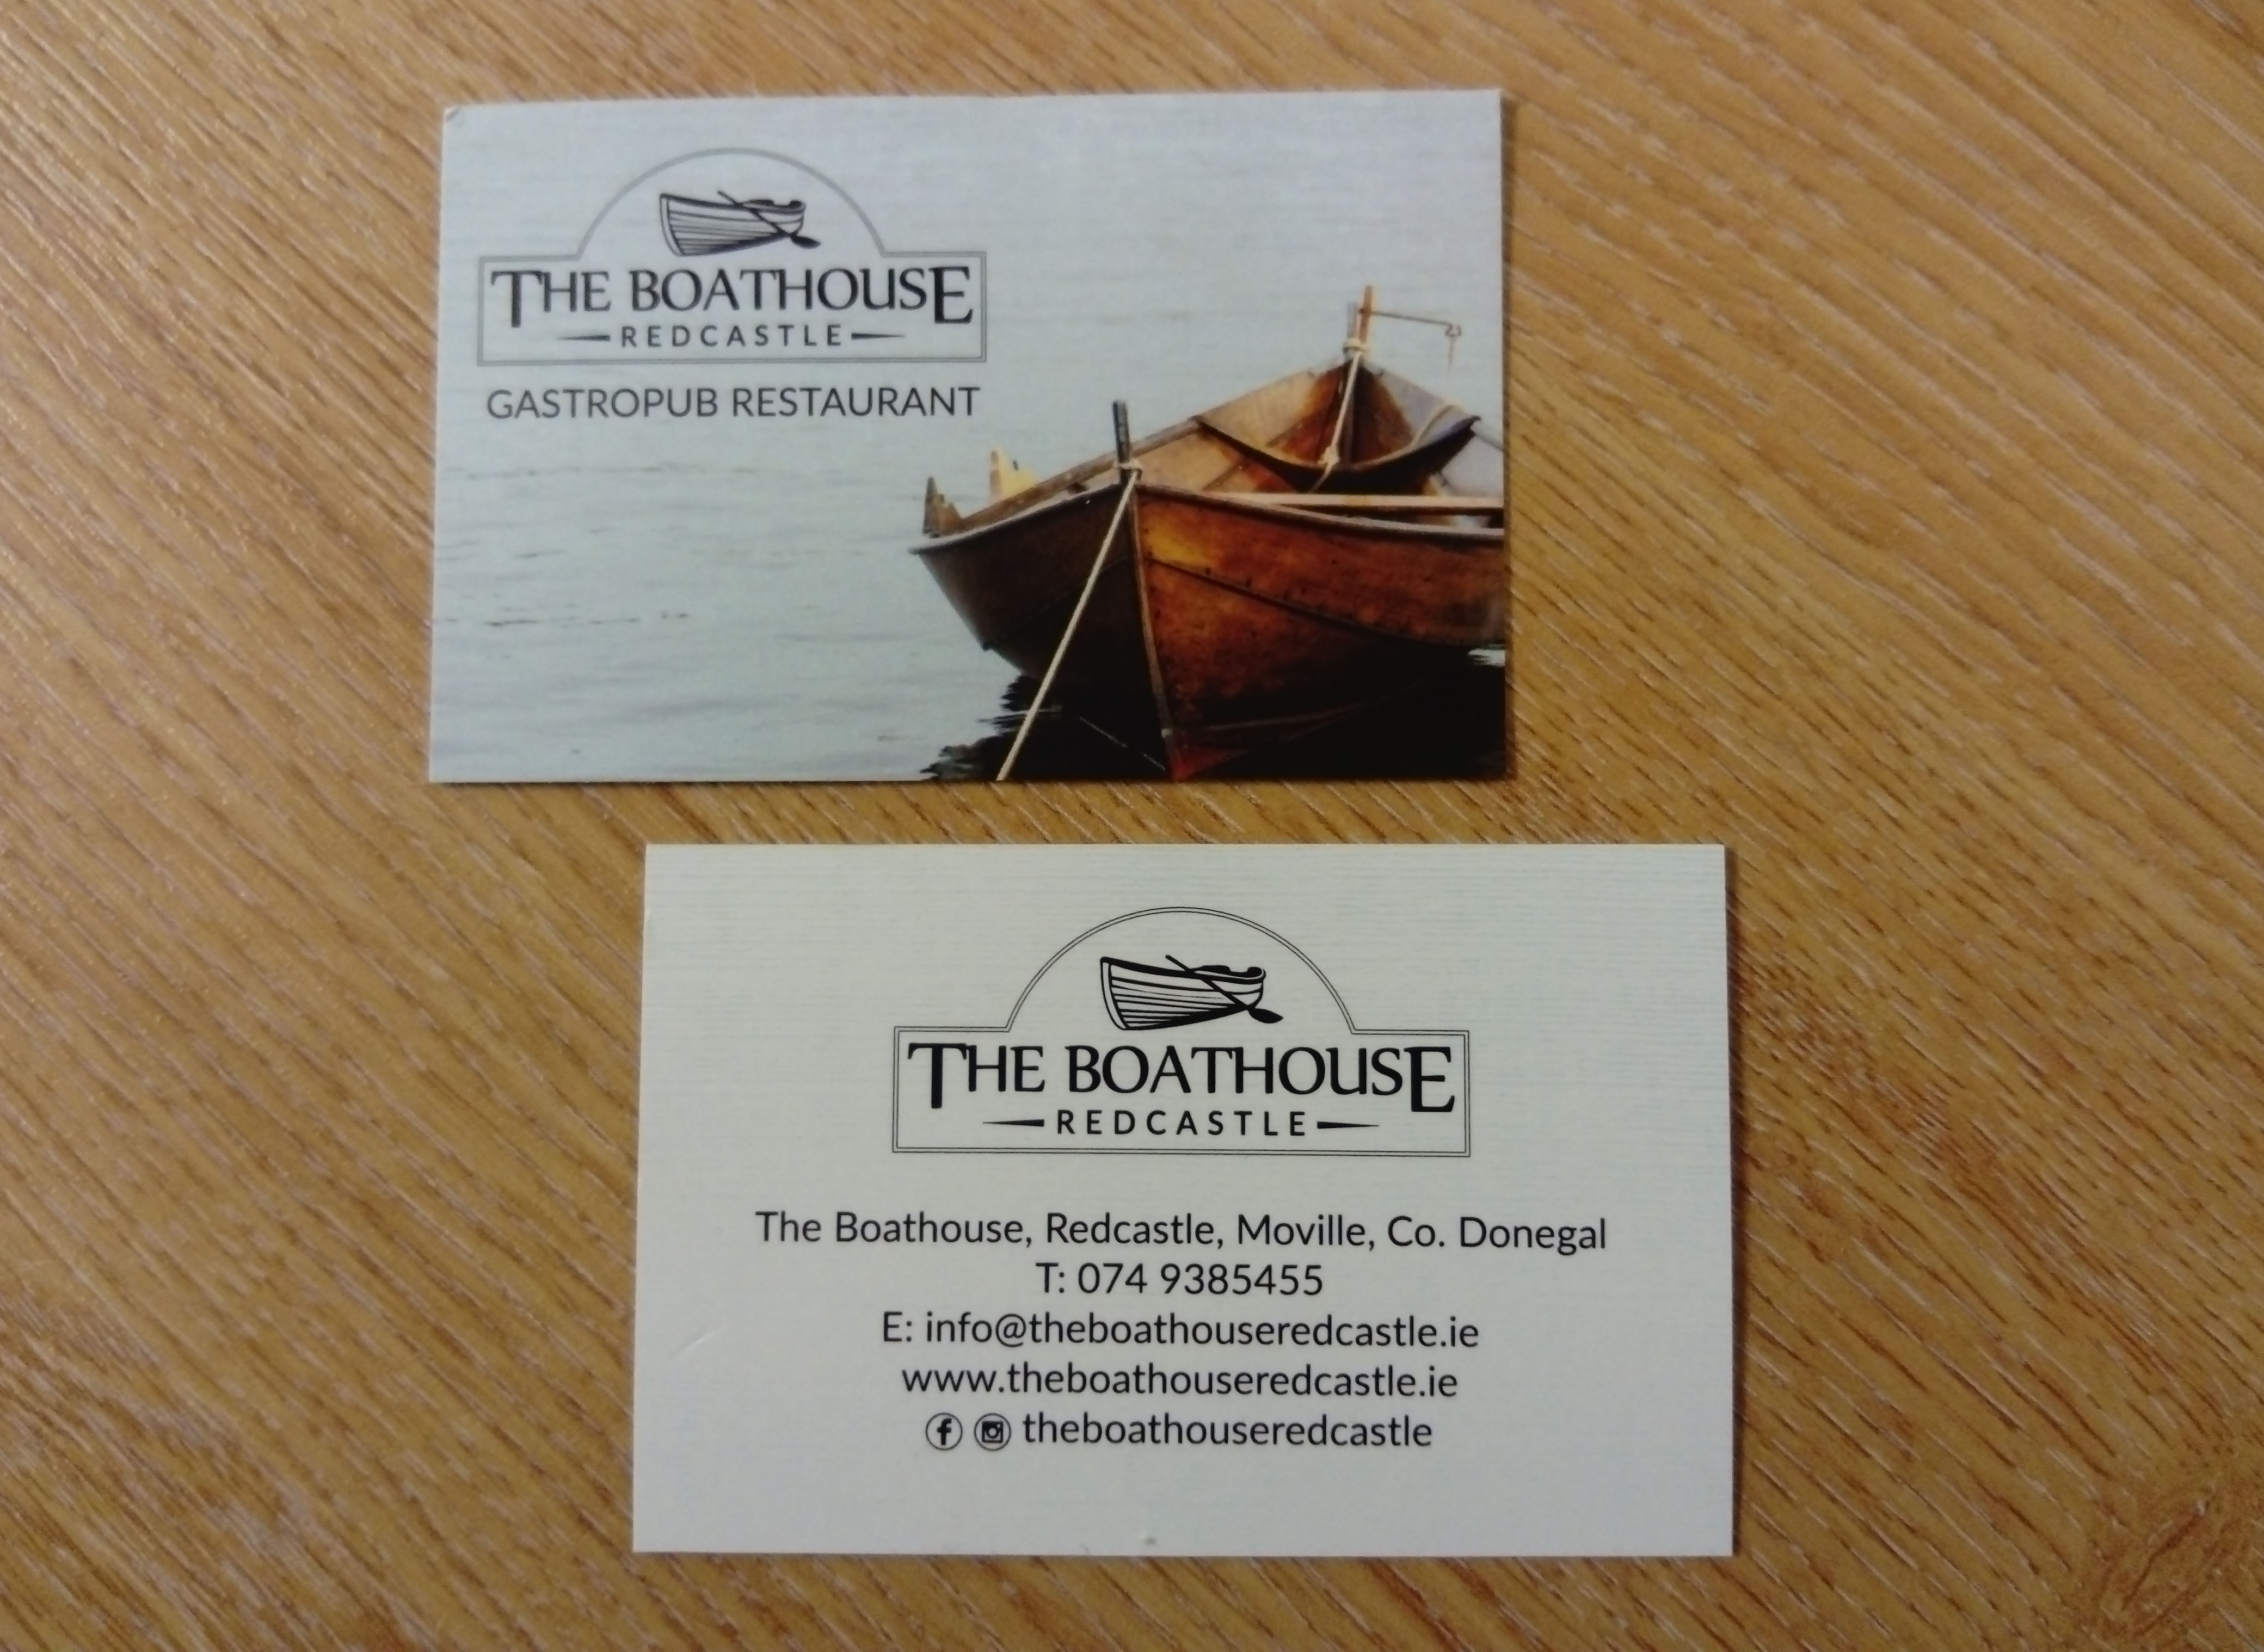 The Boathouse Redcastle - Business Cards